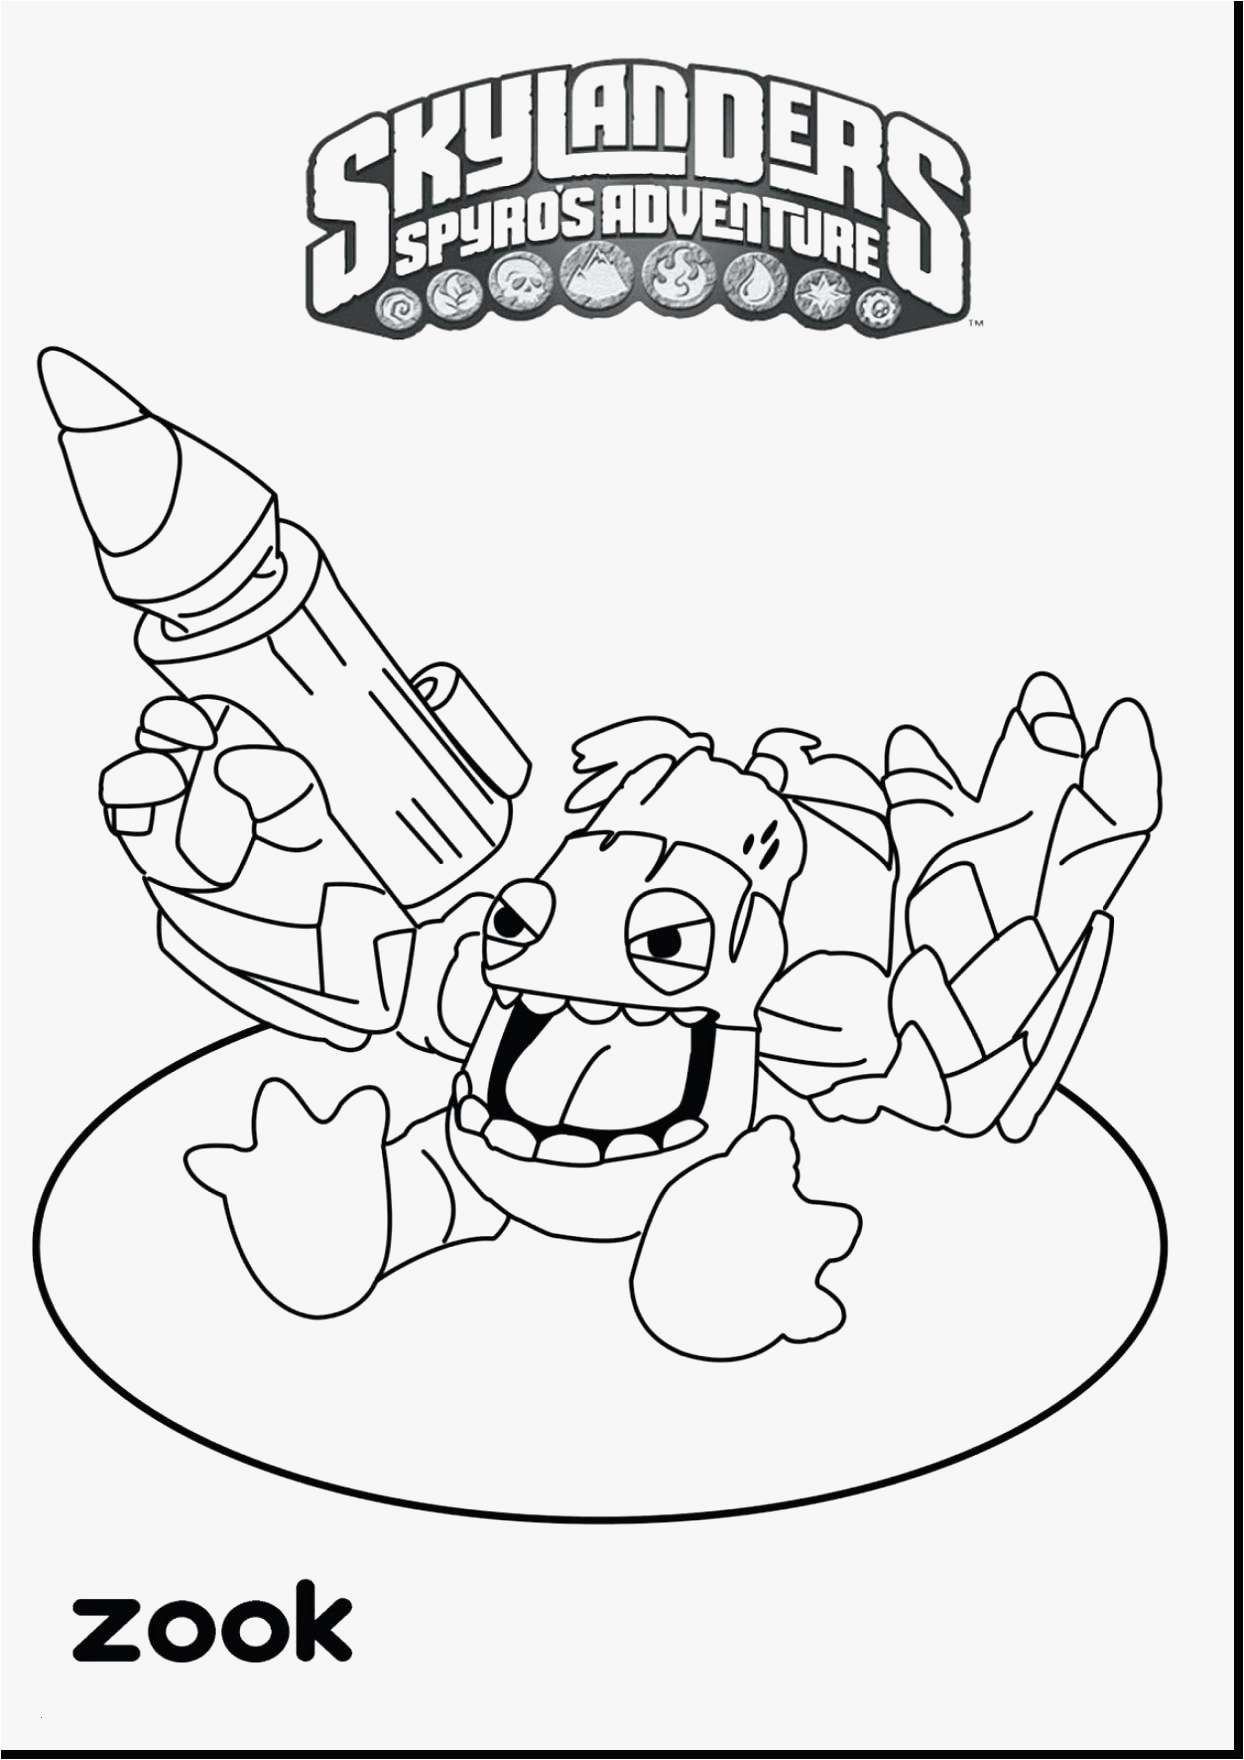 26 Free Bible Coloring Pages for Kids Download | Coloring Sheets